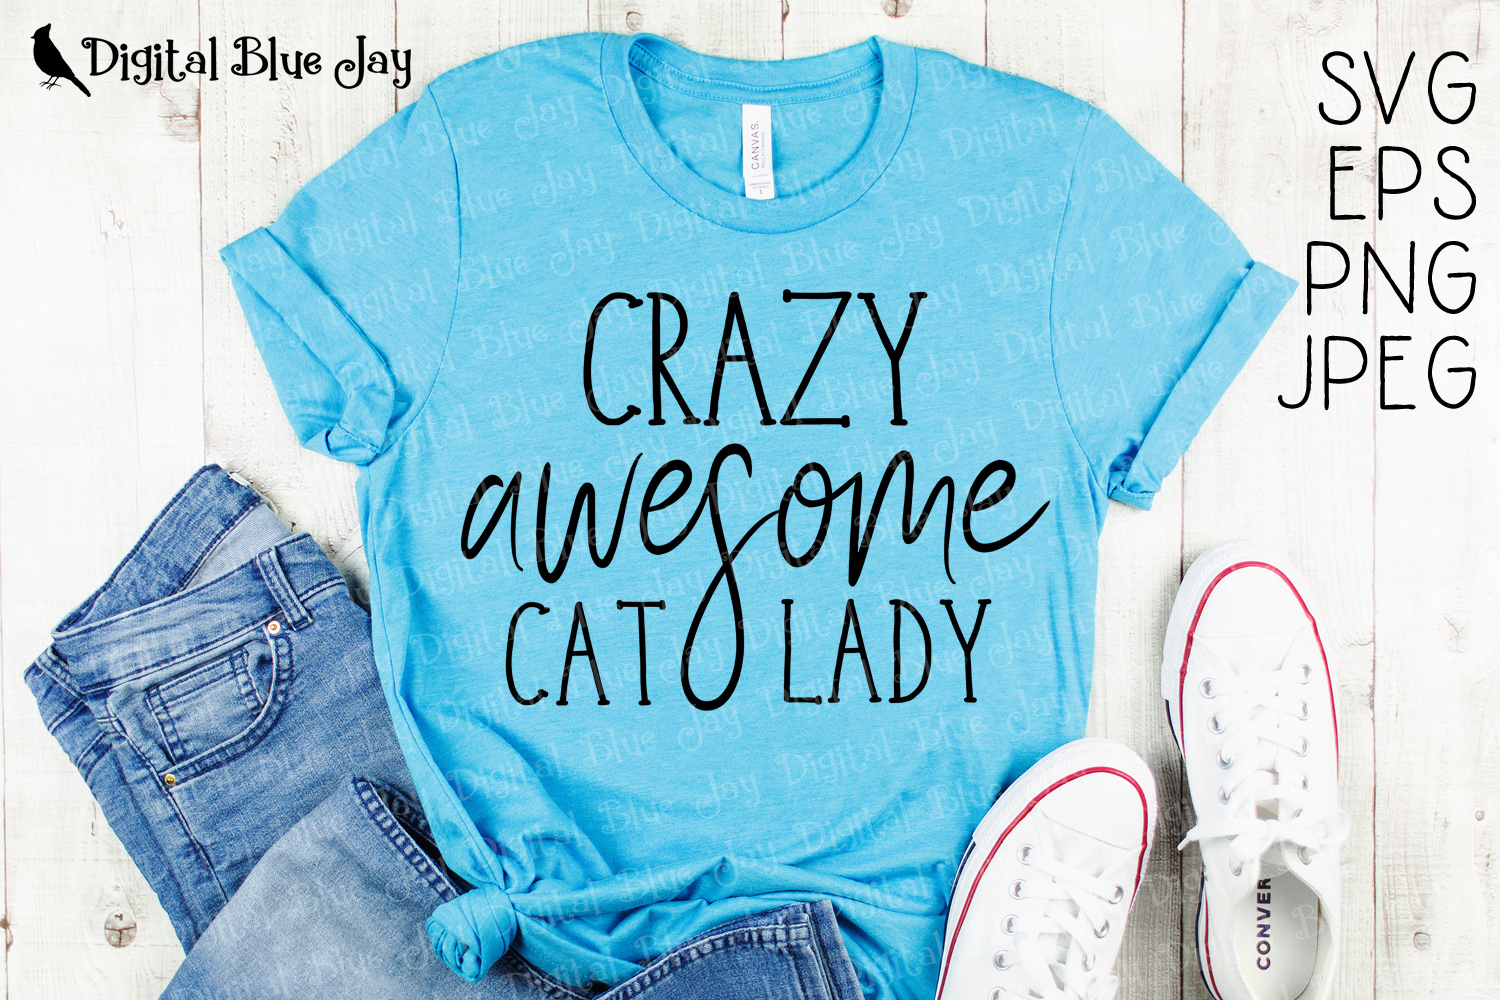 Crazy Awesome Cat Lady SVG PNG Cut Files example image 1